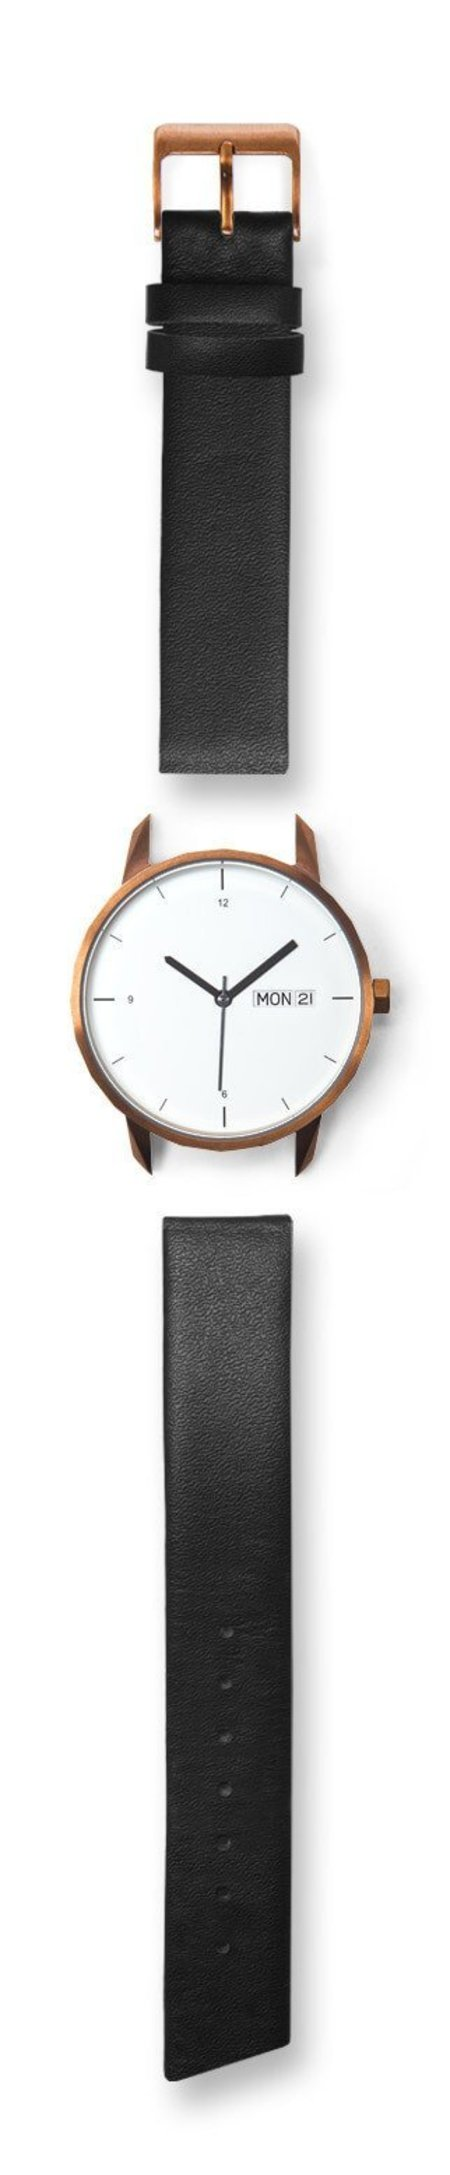 Unisex Tinker Watches 38mm Copper Watch Black Italian Leather Strap